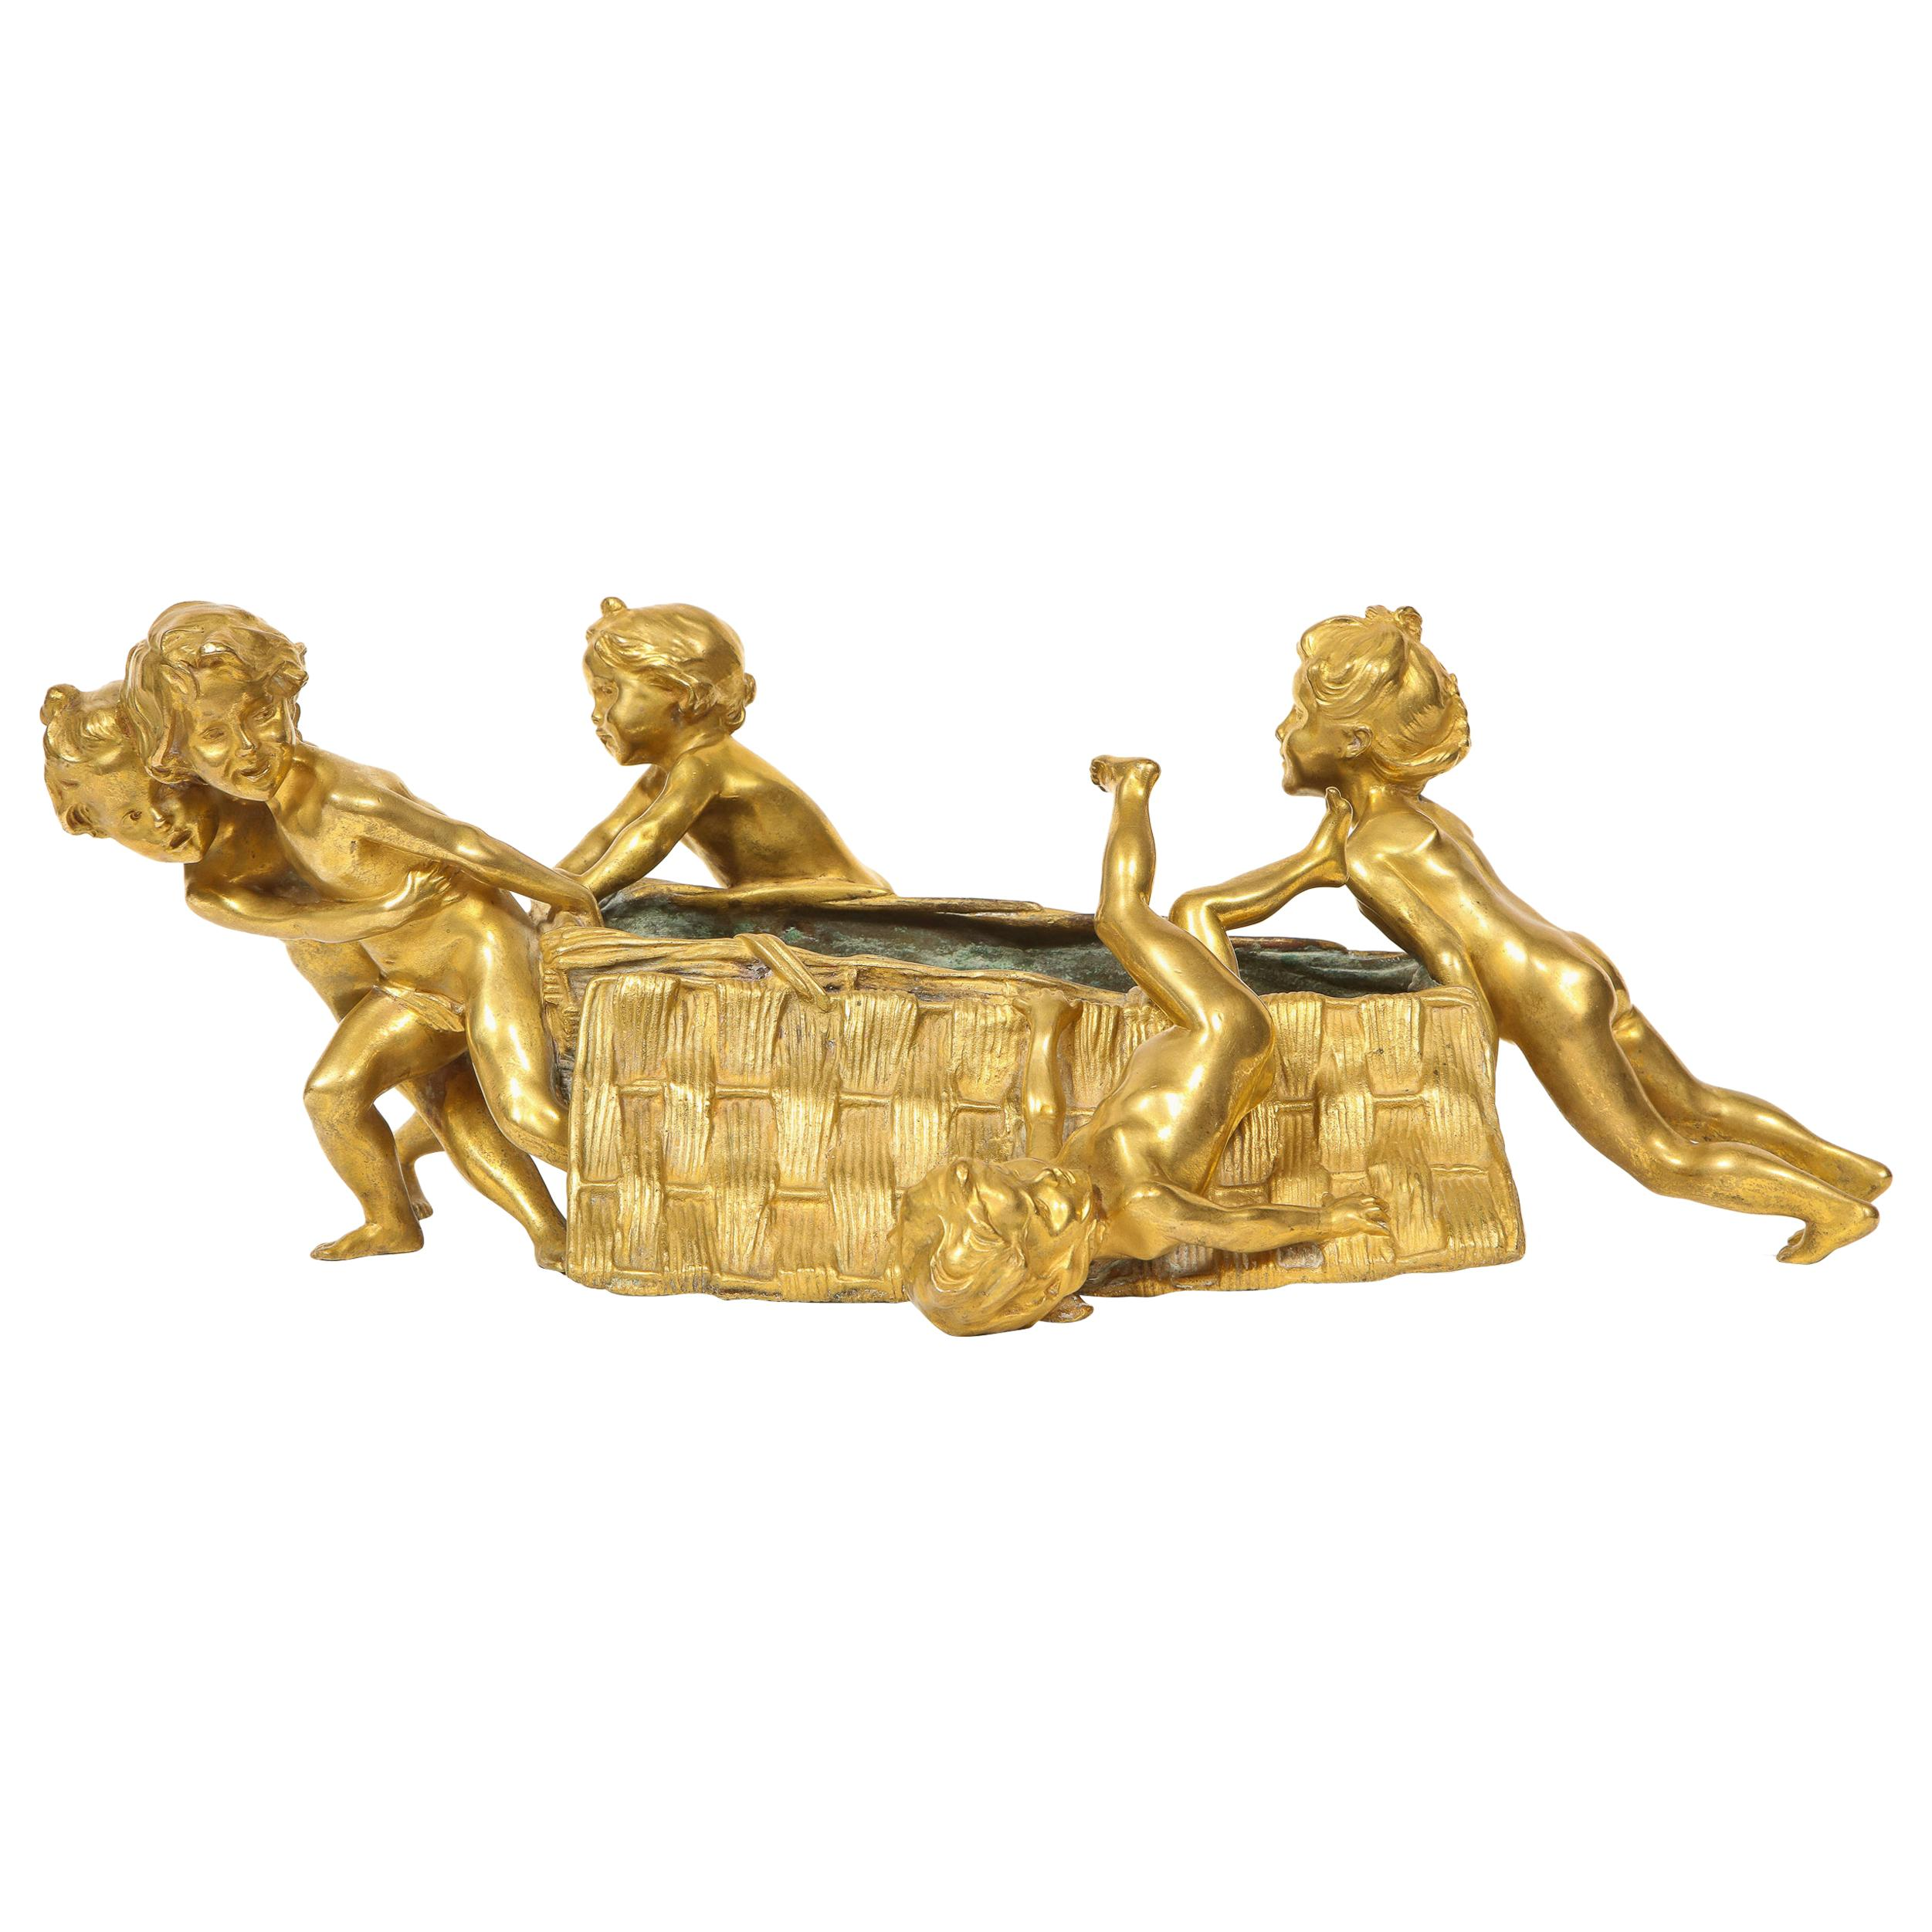 Francois-Raoul Larche 'French' a French Gilt Bronze Table Centerpiece